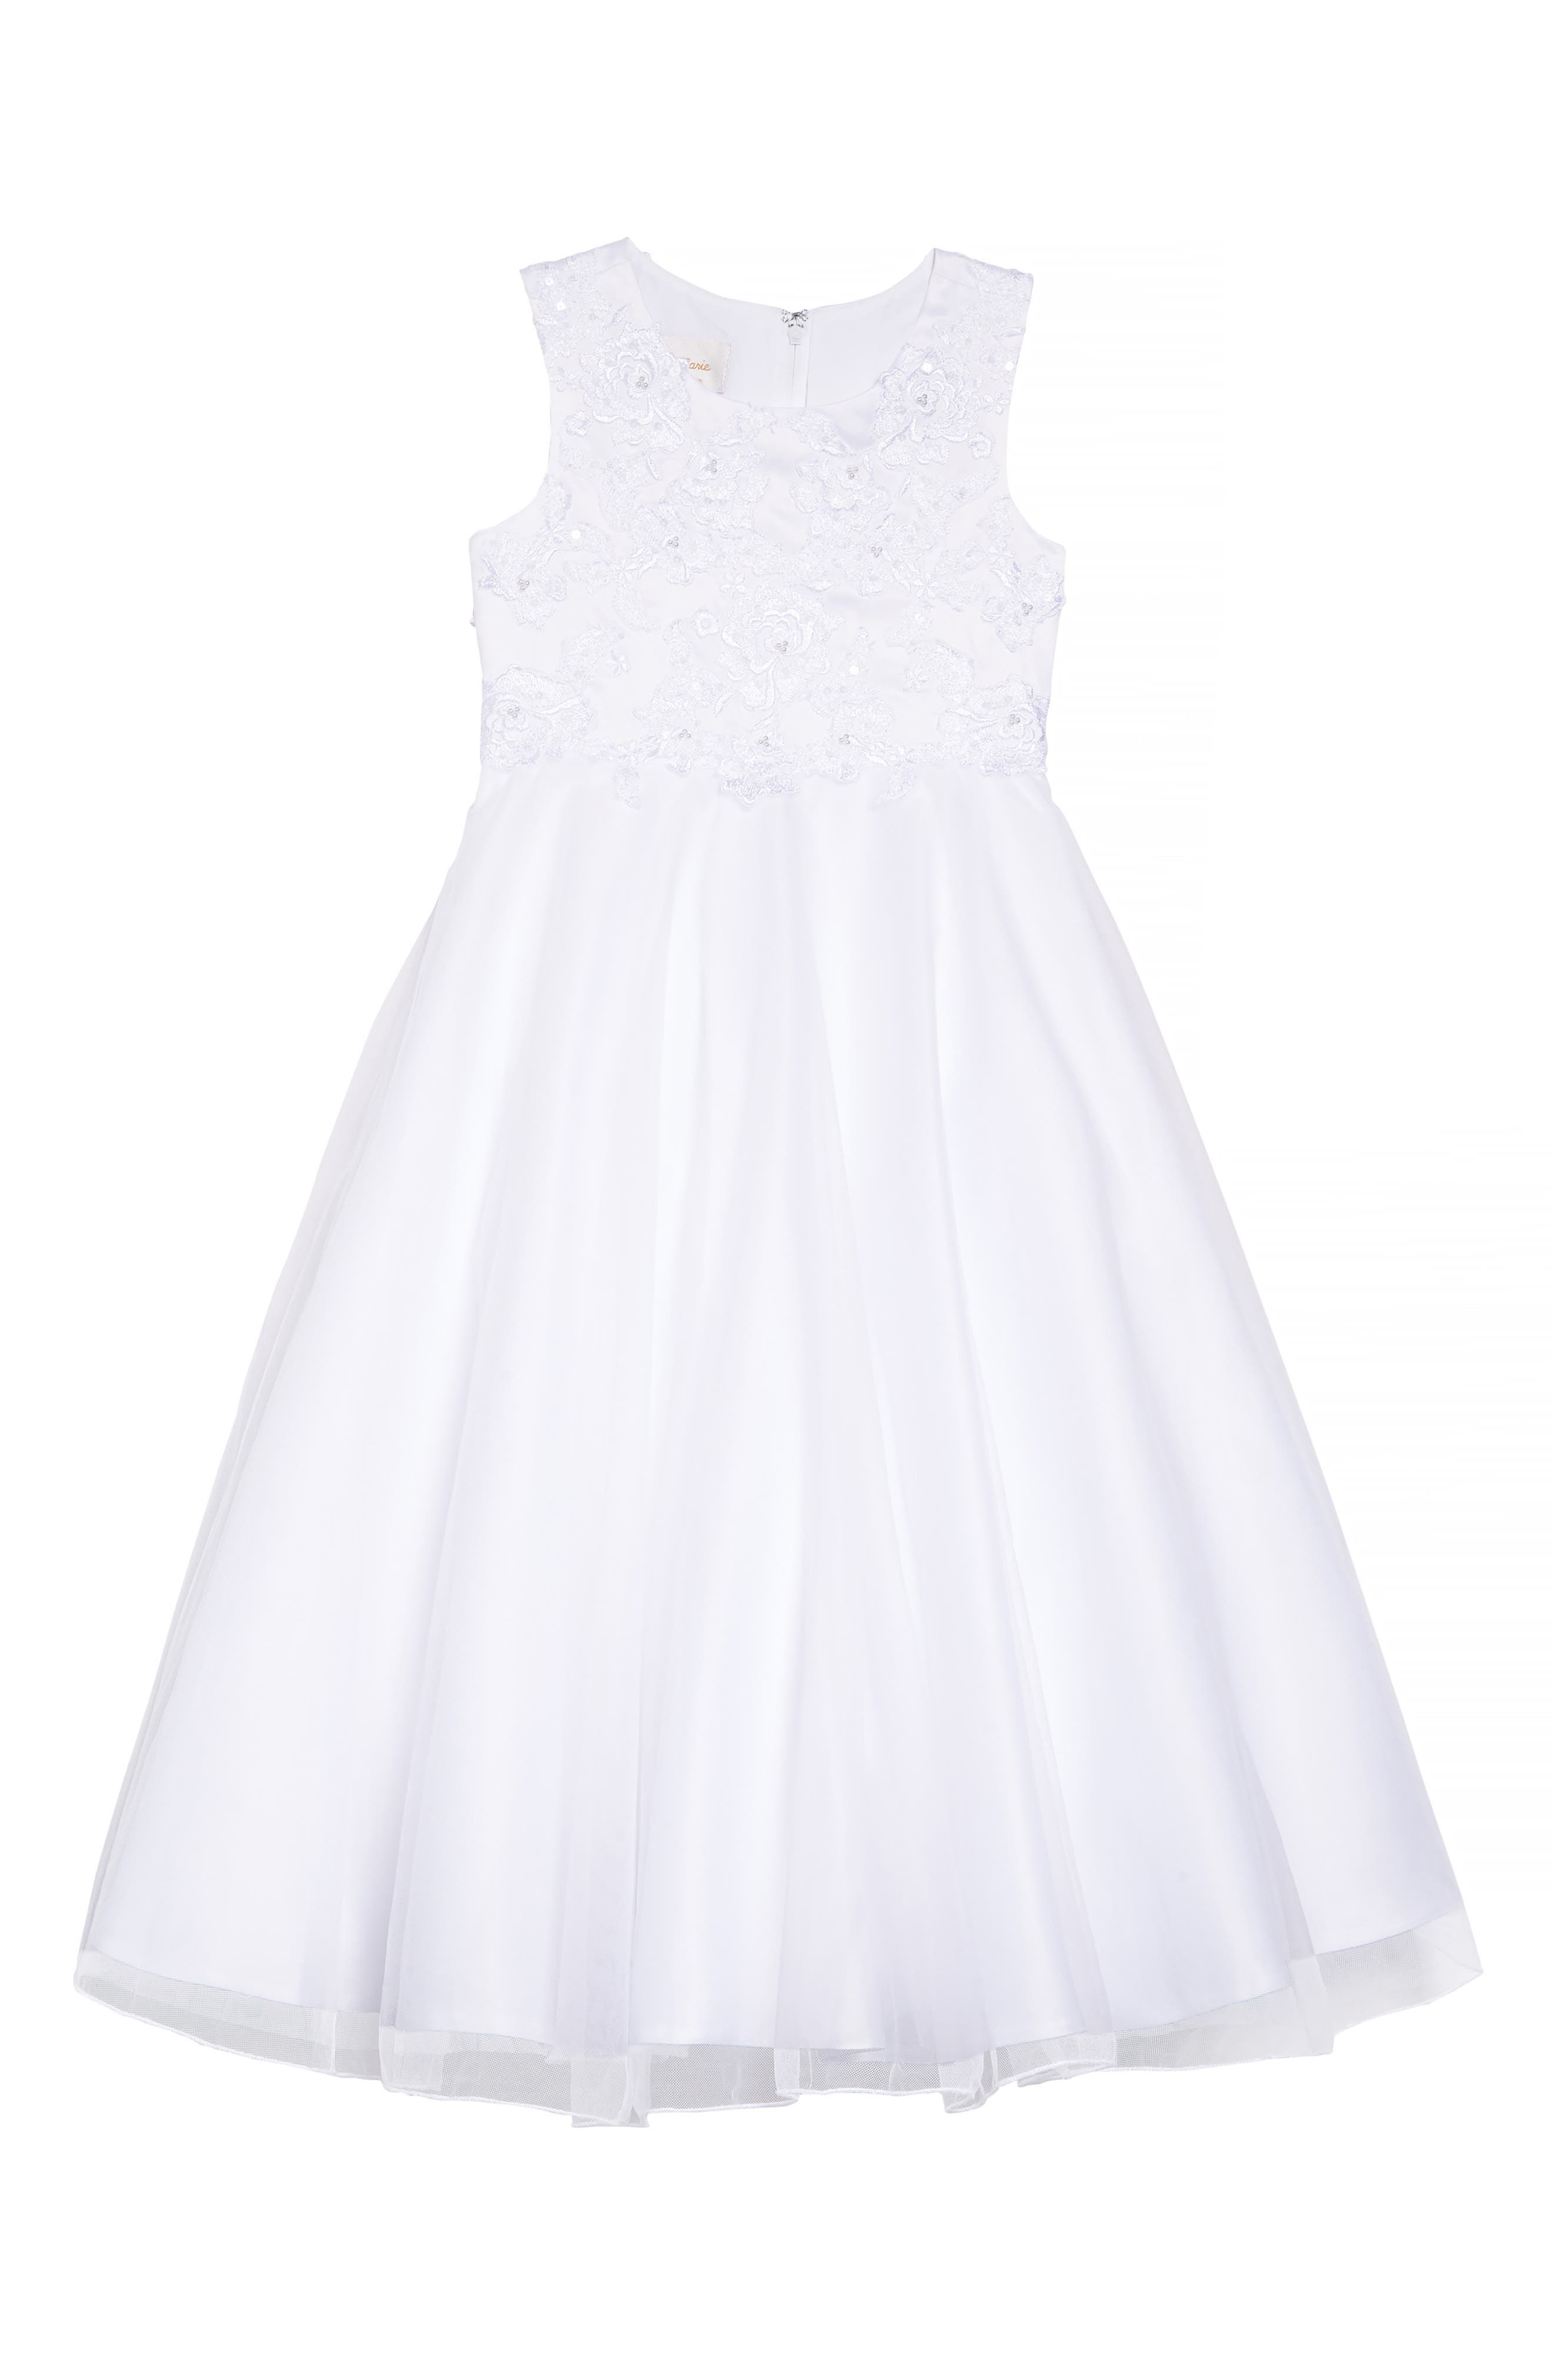 LAUREN MARIE Embroidered Bodice Tulle Dress, Main, color, WHITE